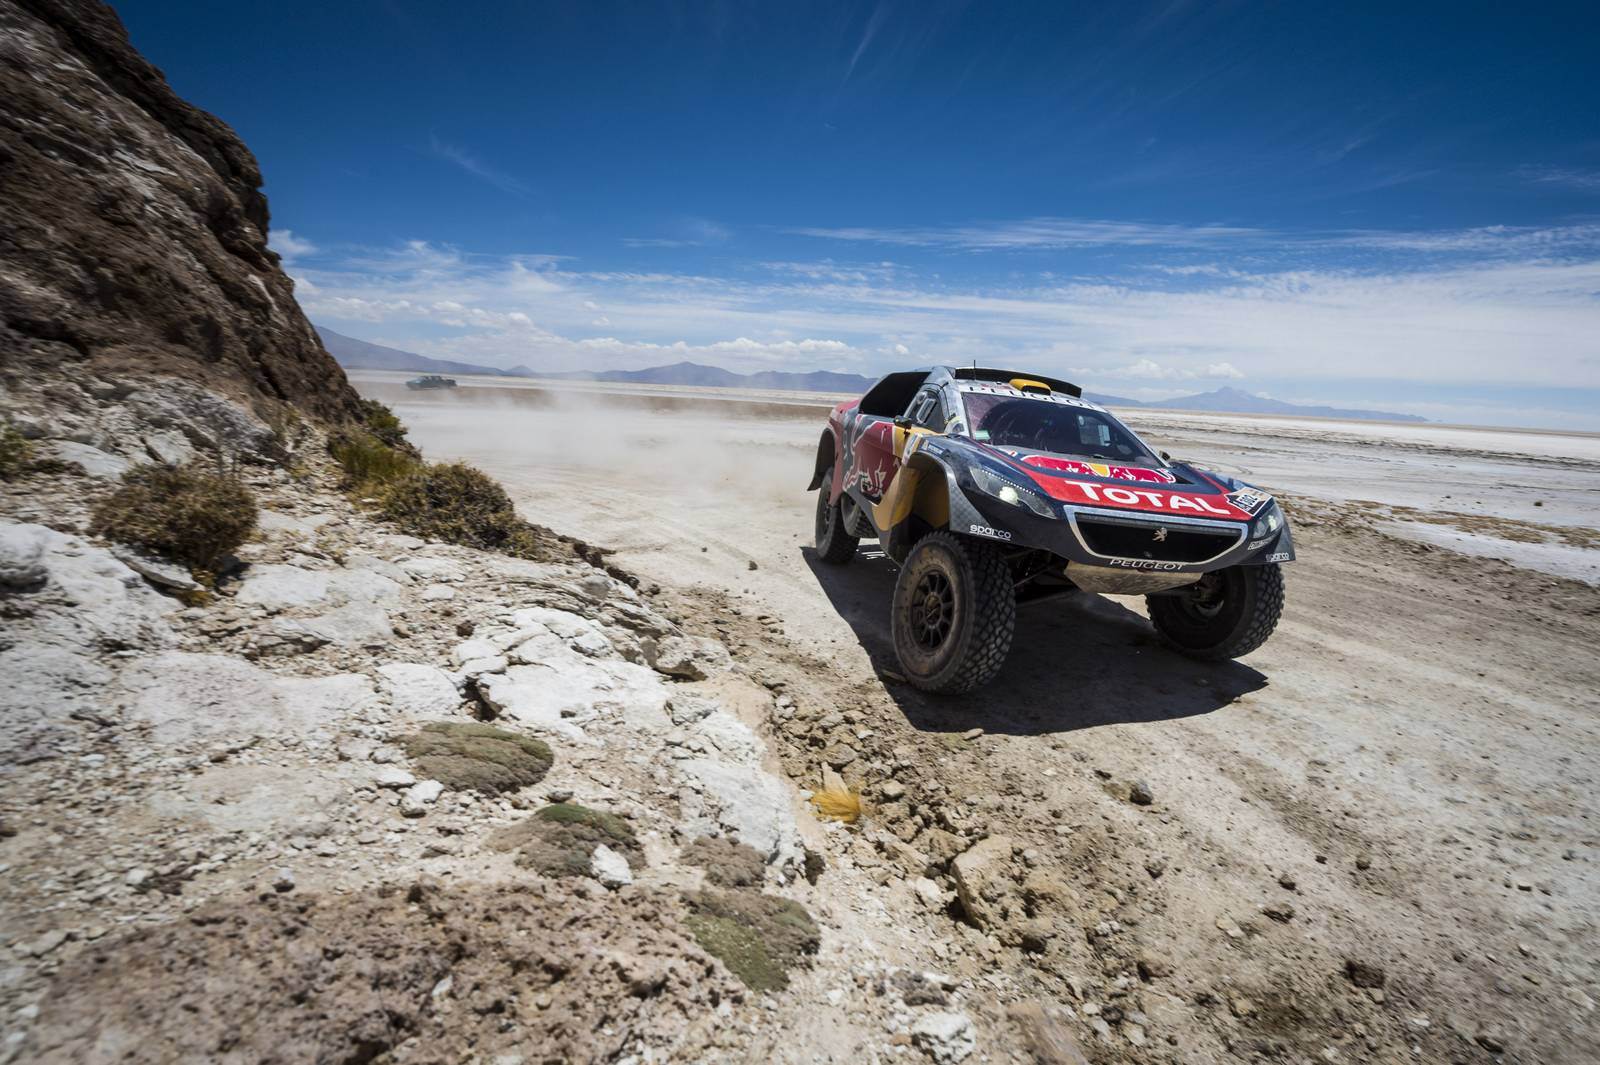 dakar rally 2016 peterhansel mister dakar wins stage 6 in uyuni gtspirit. Black Bedroom Furniture Sets. Home Design Ideas